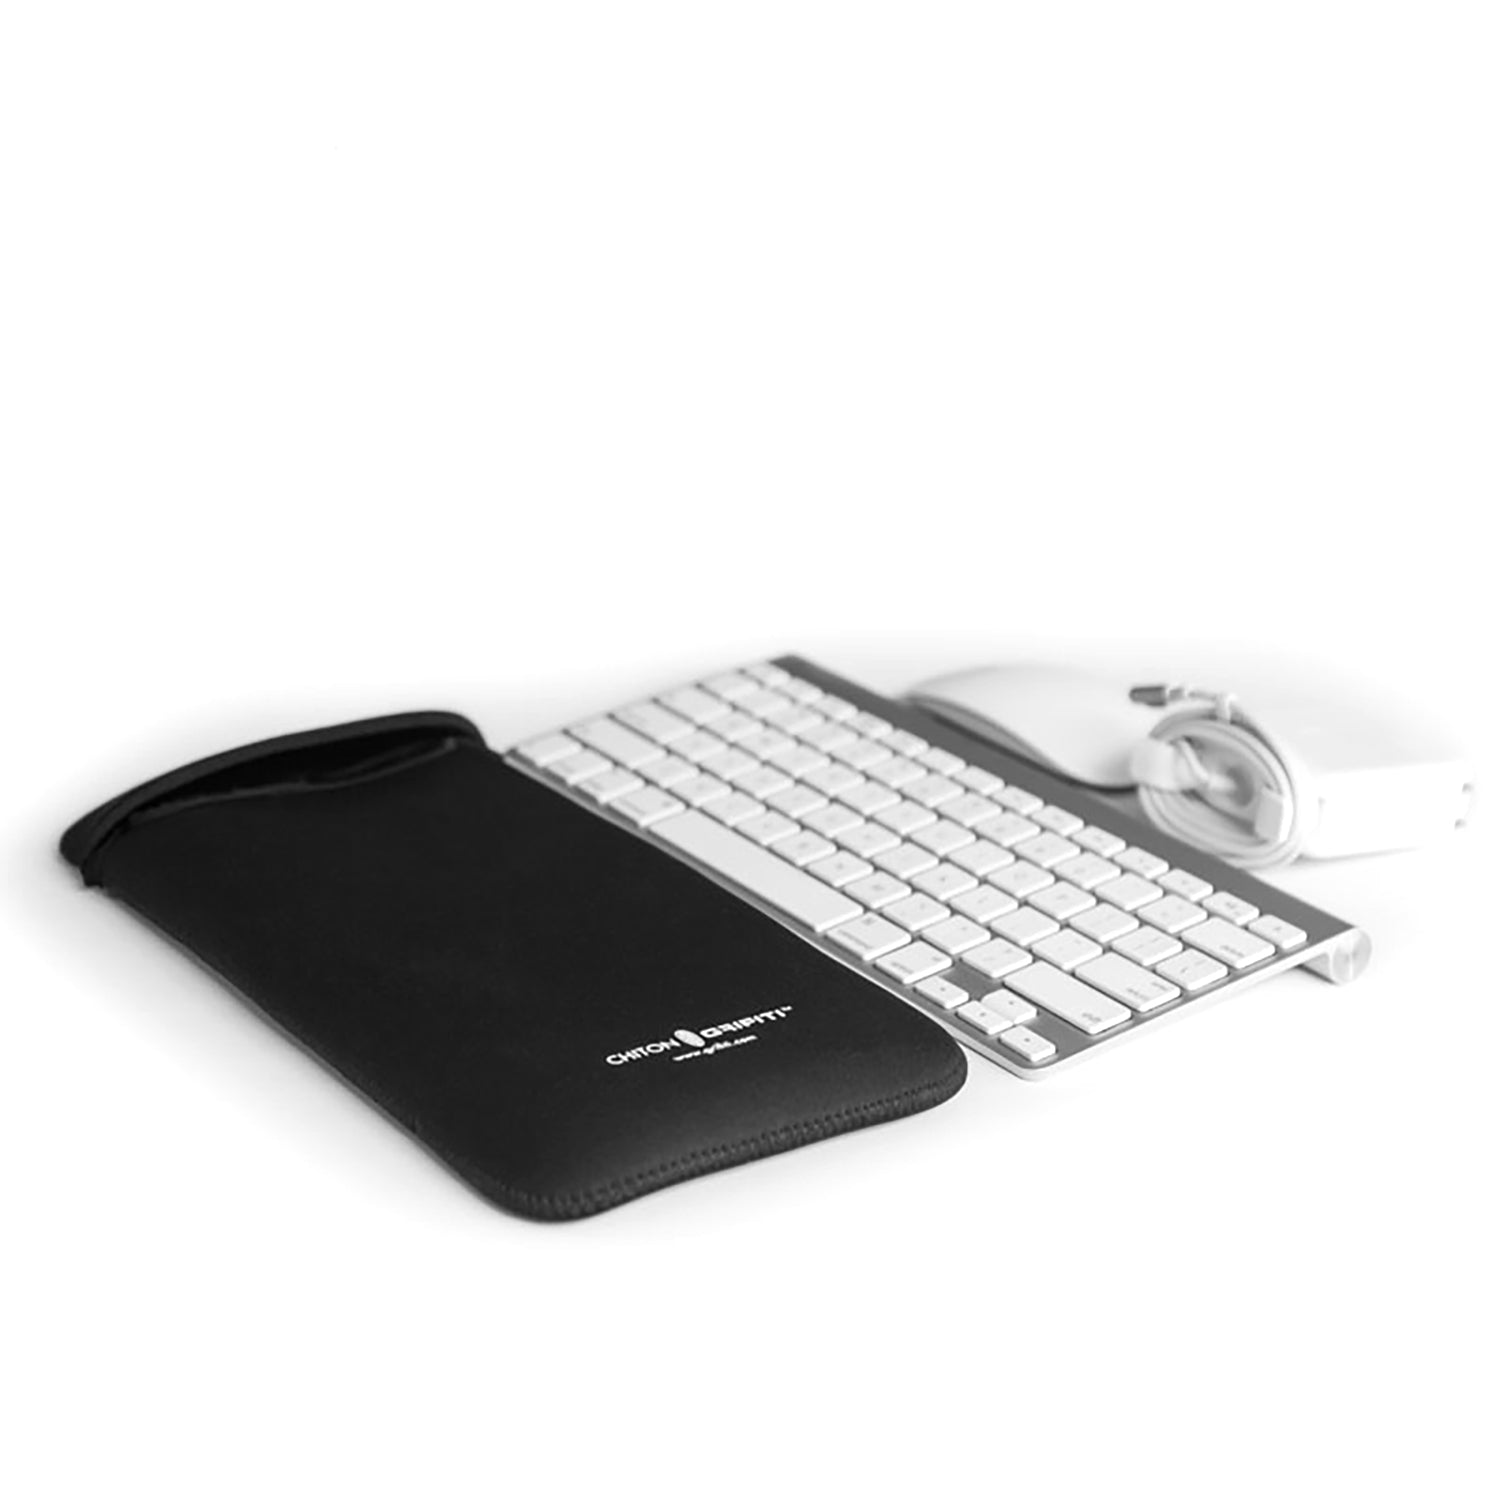 Grifiti Chiton Slim 12 Inch Keyboard Sleeve for Wireless Keyboards - Grifiti